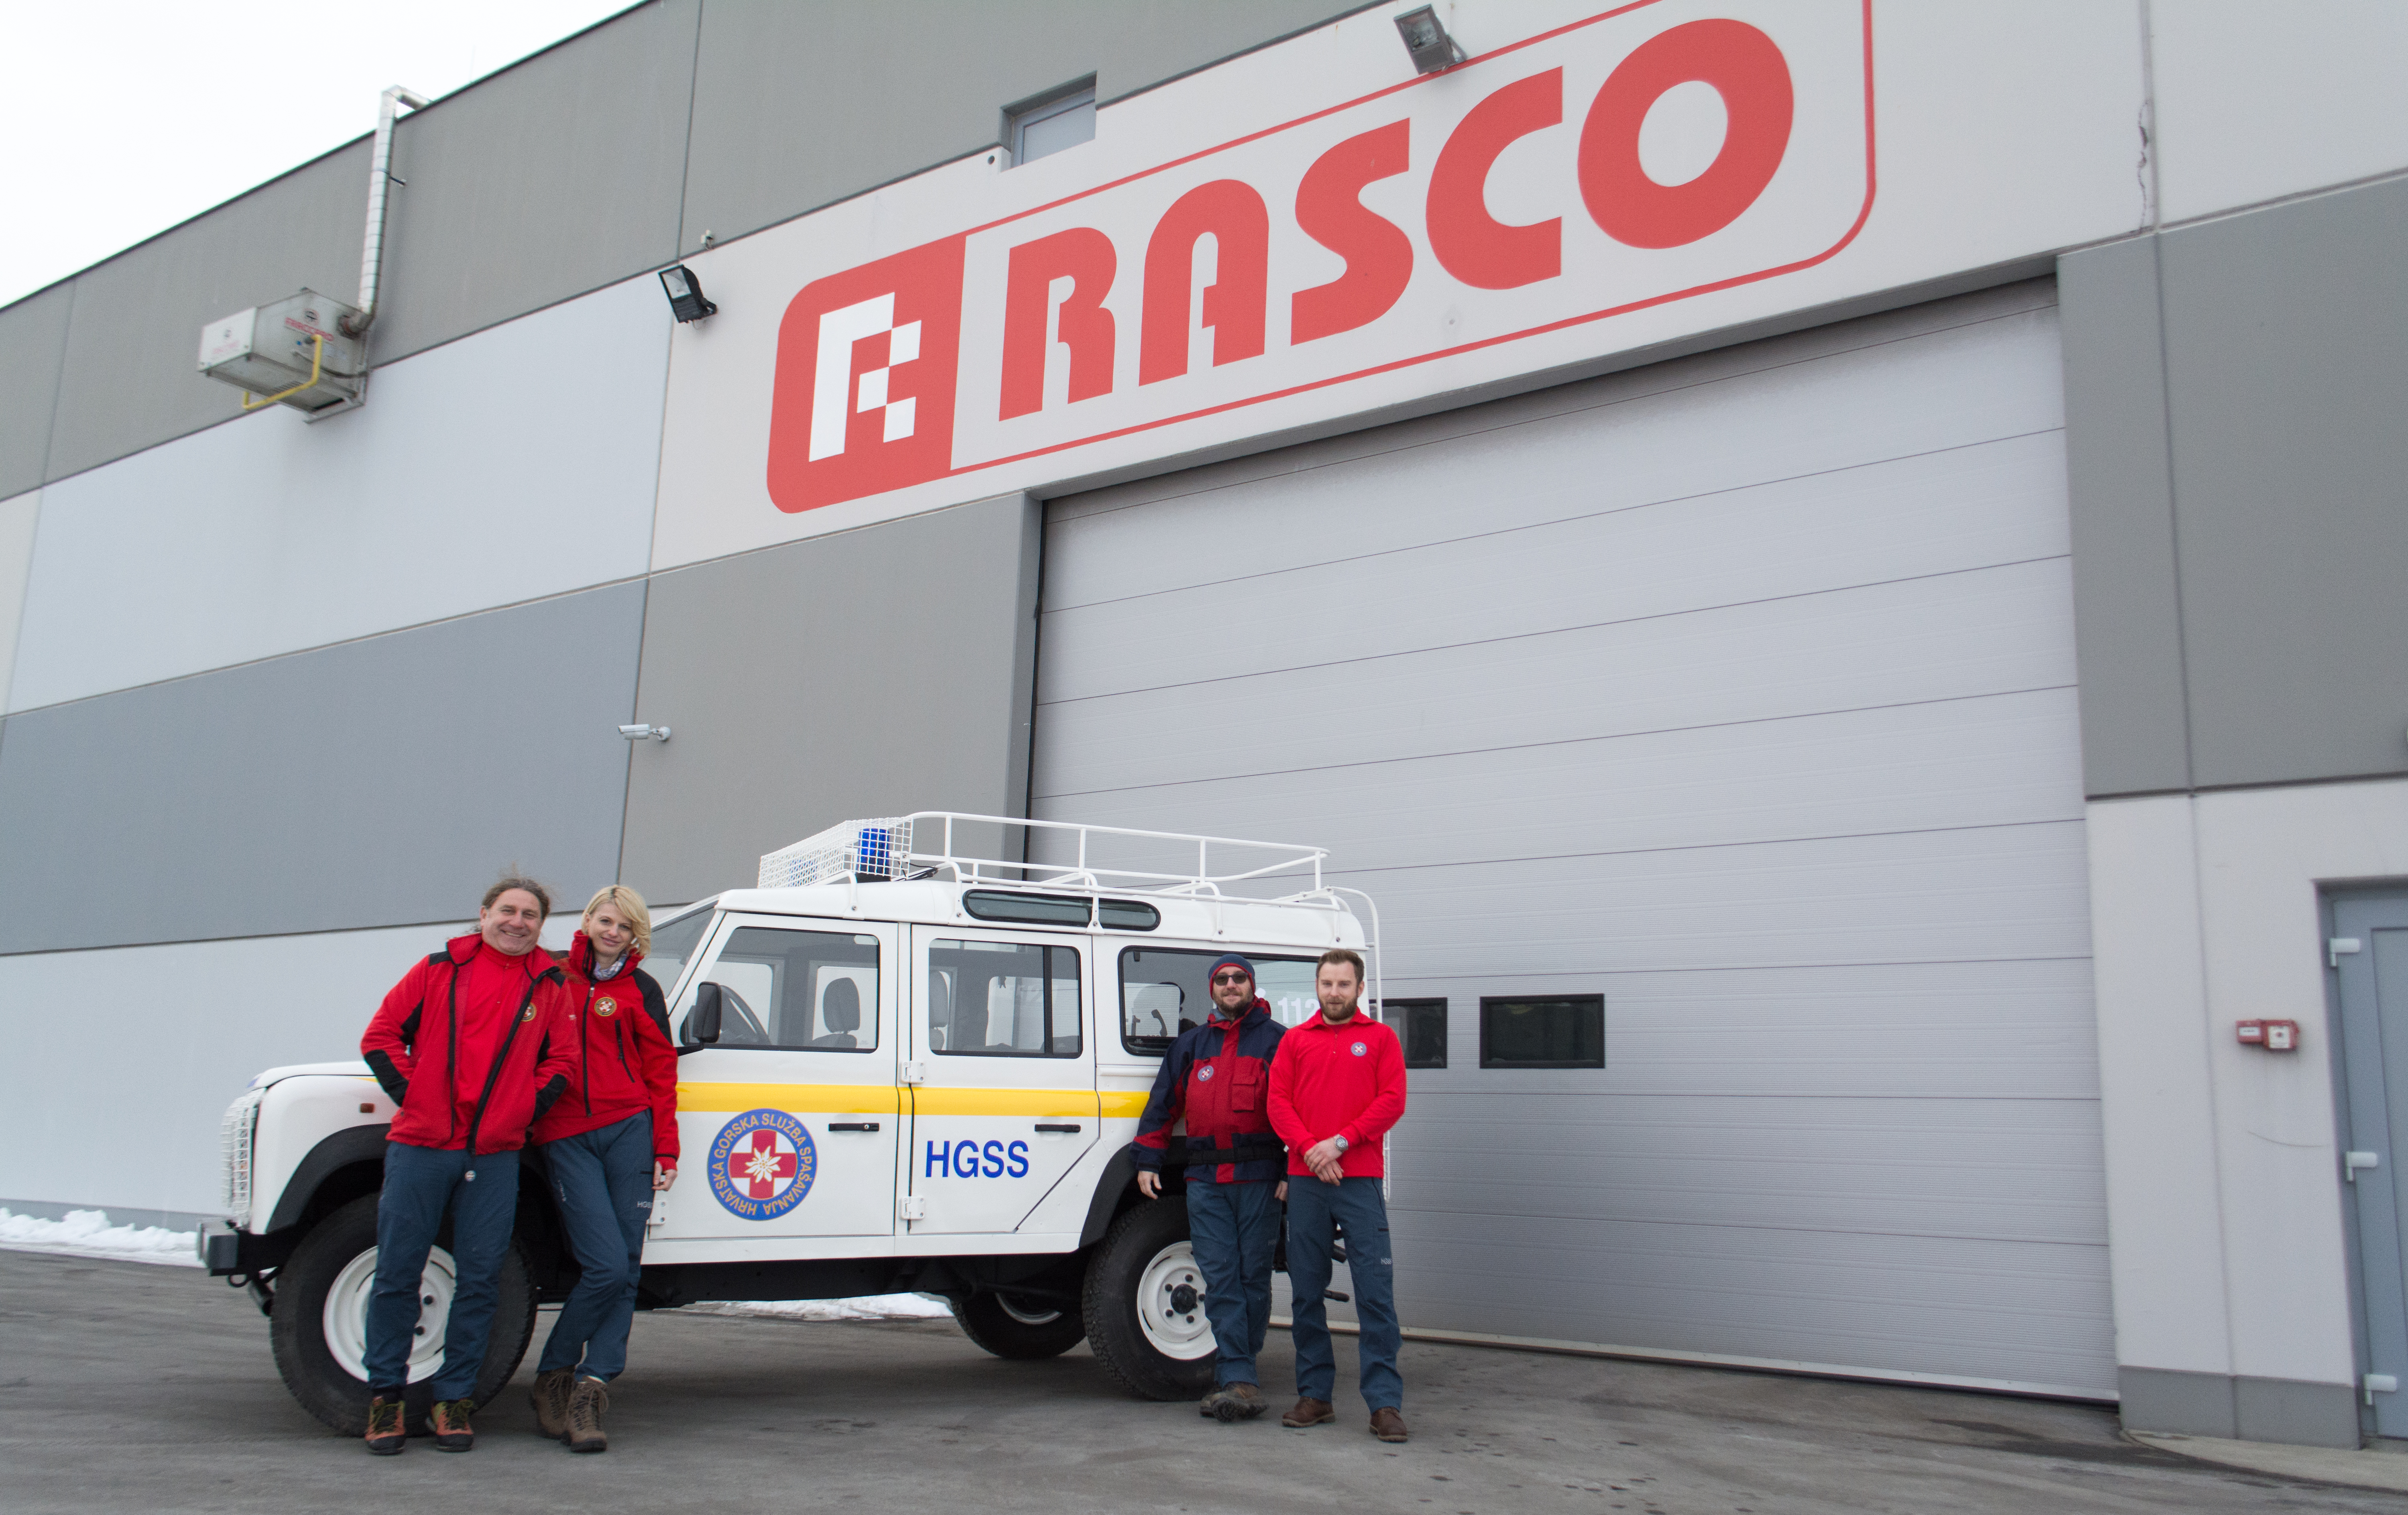 Cooperation with the rescue service 76